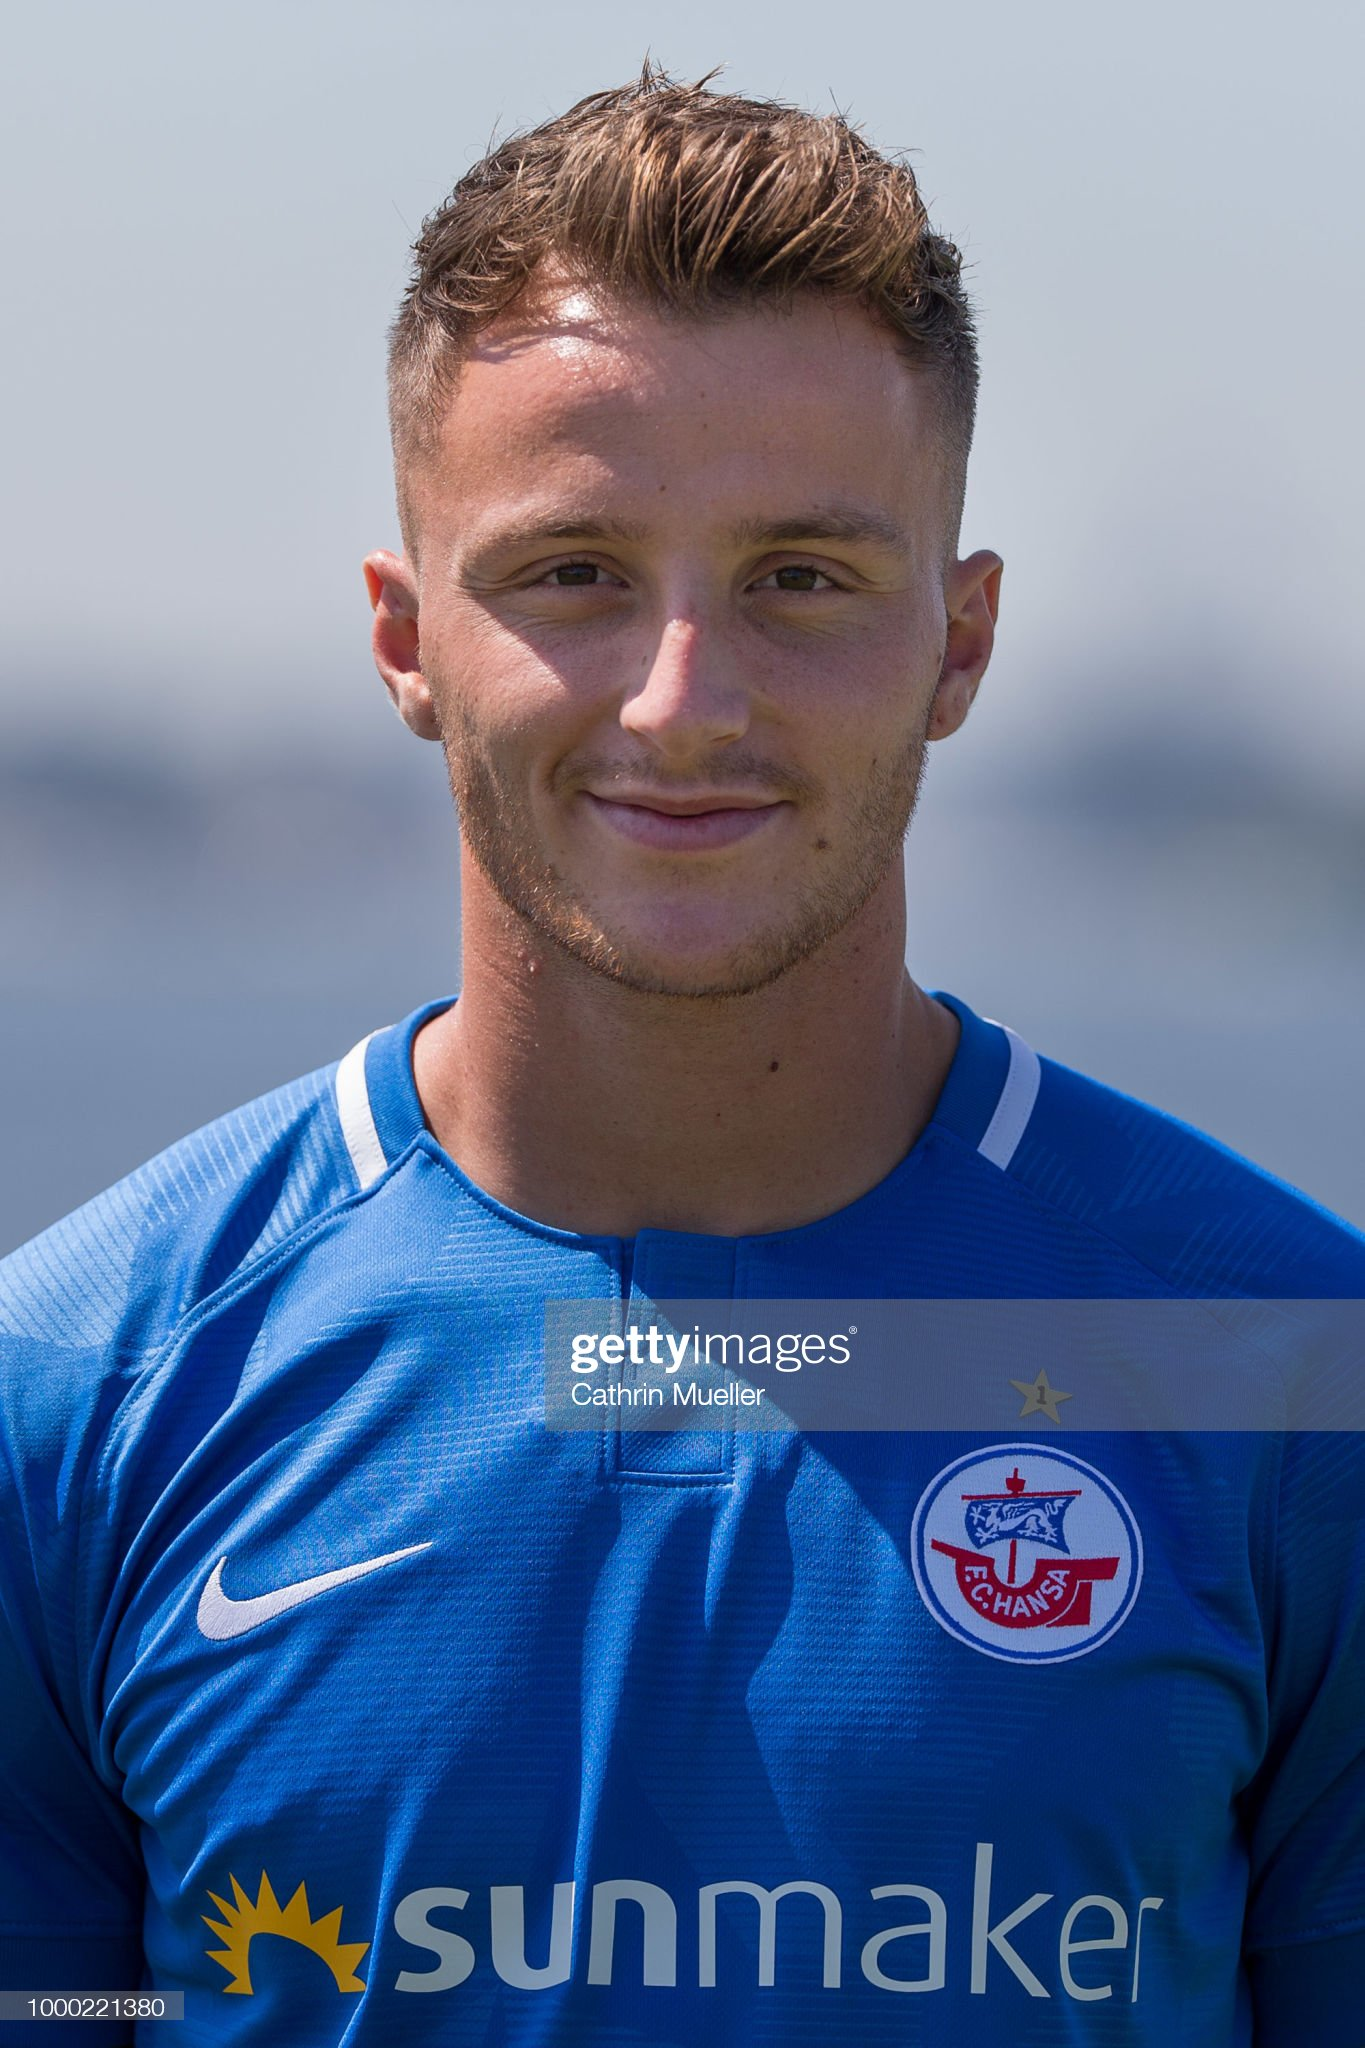 https://media.gettyimages.com/photos/mirnes-pepic-of-hansa-rostock-poses-for-a-photo-during-a-team-on-16-picture-id1000221380?s=2048x2048